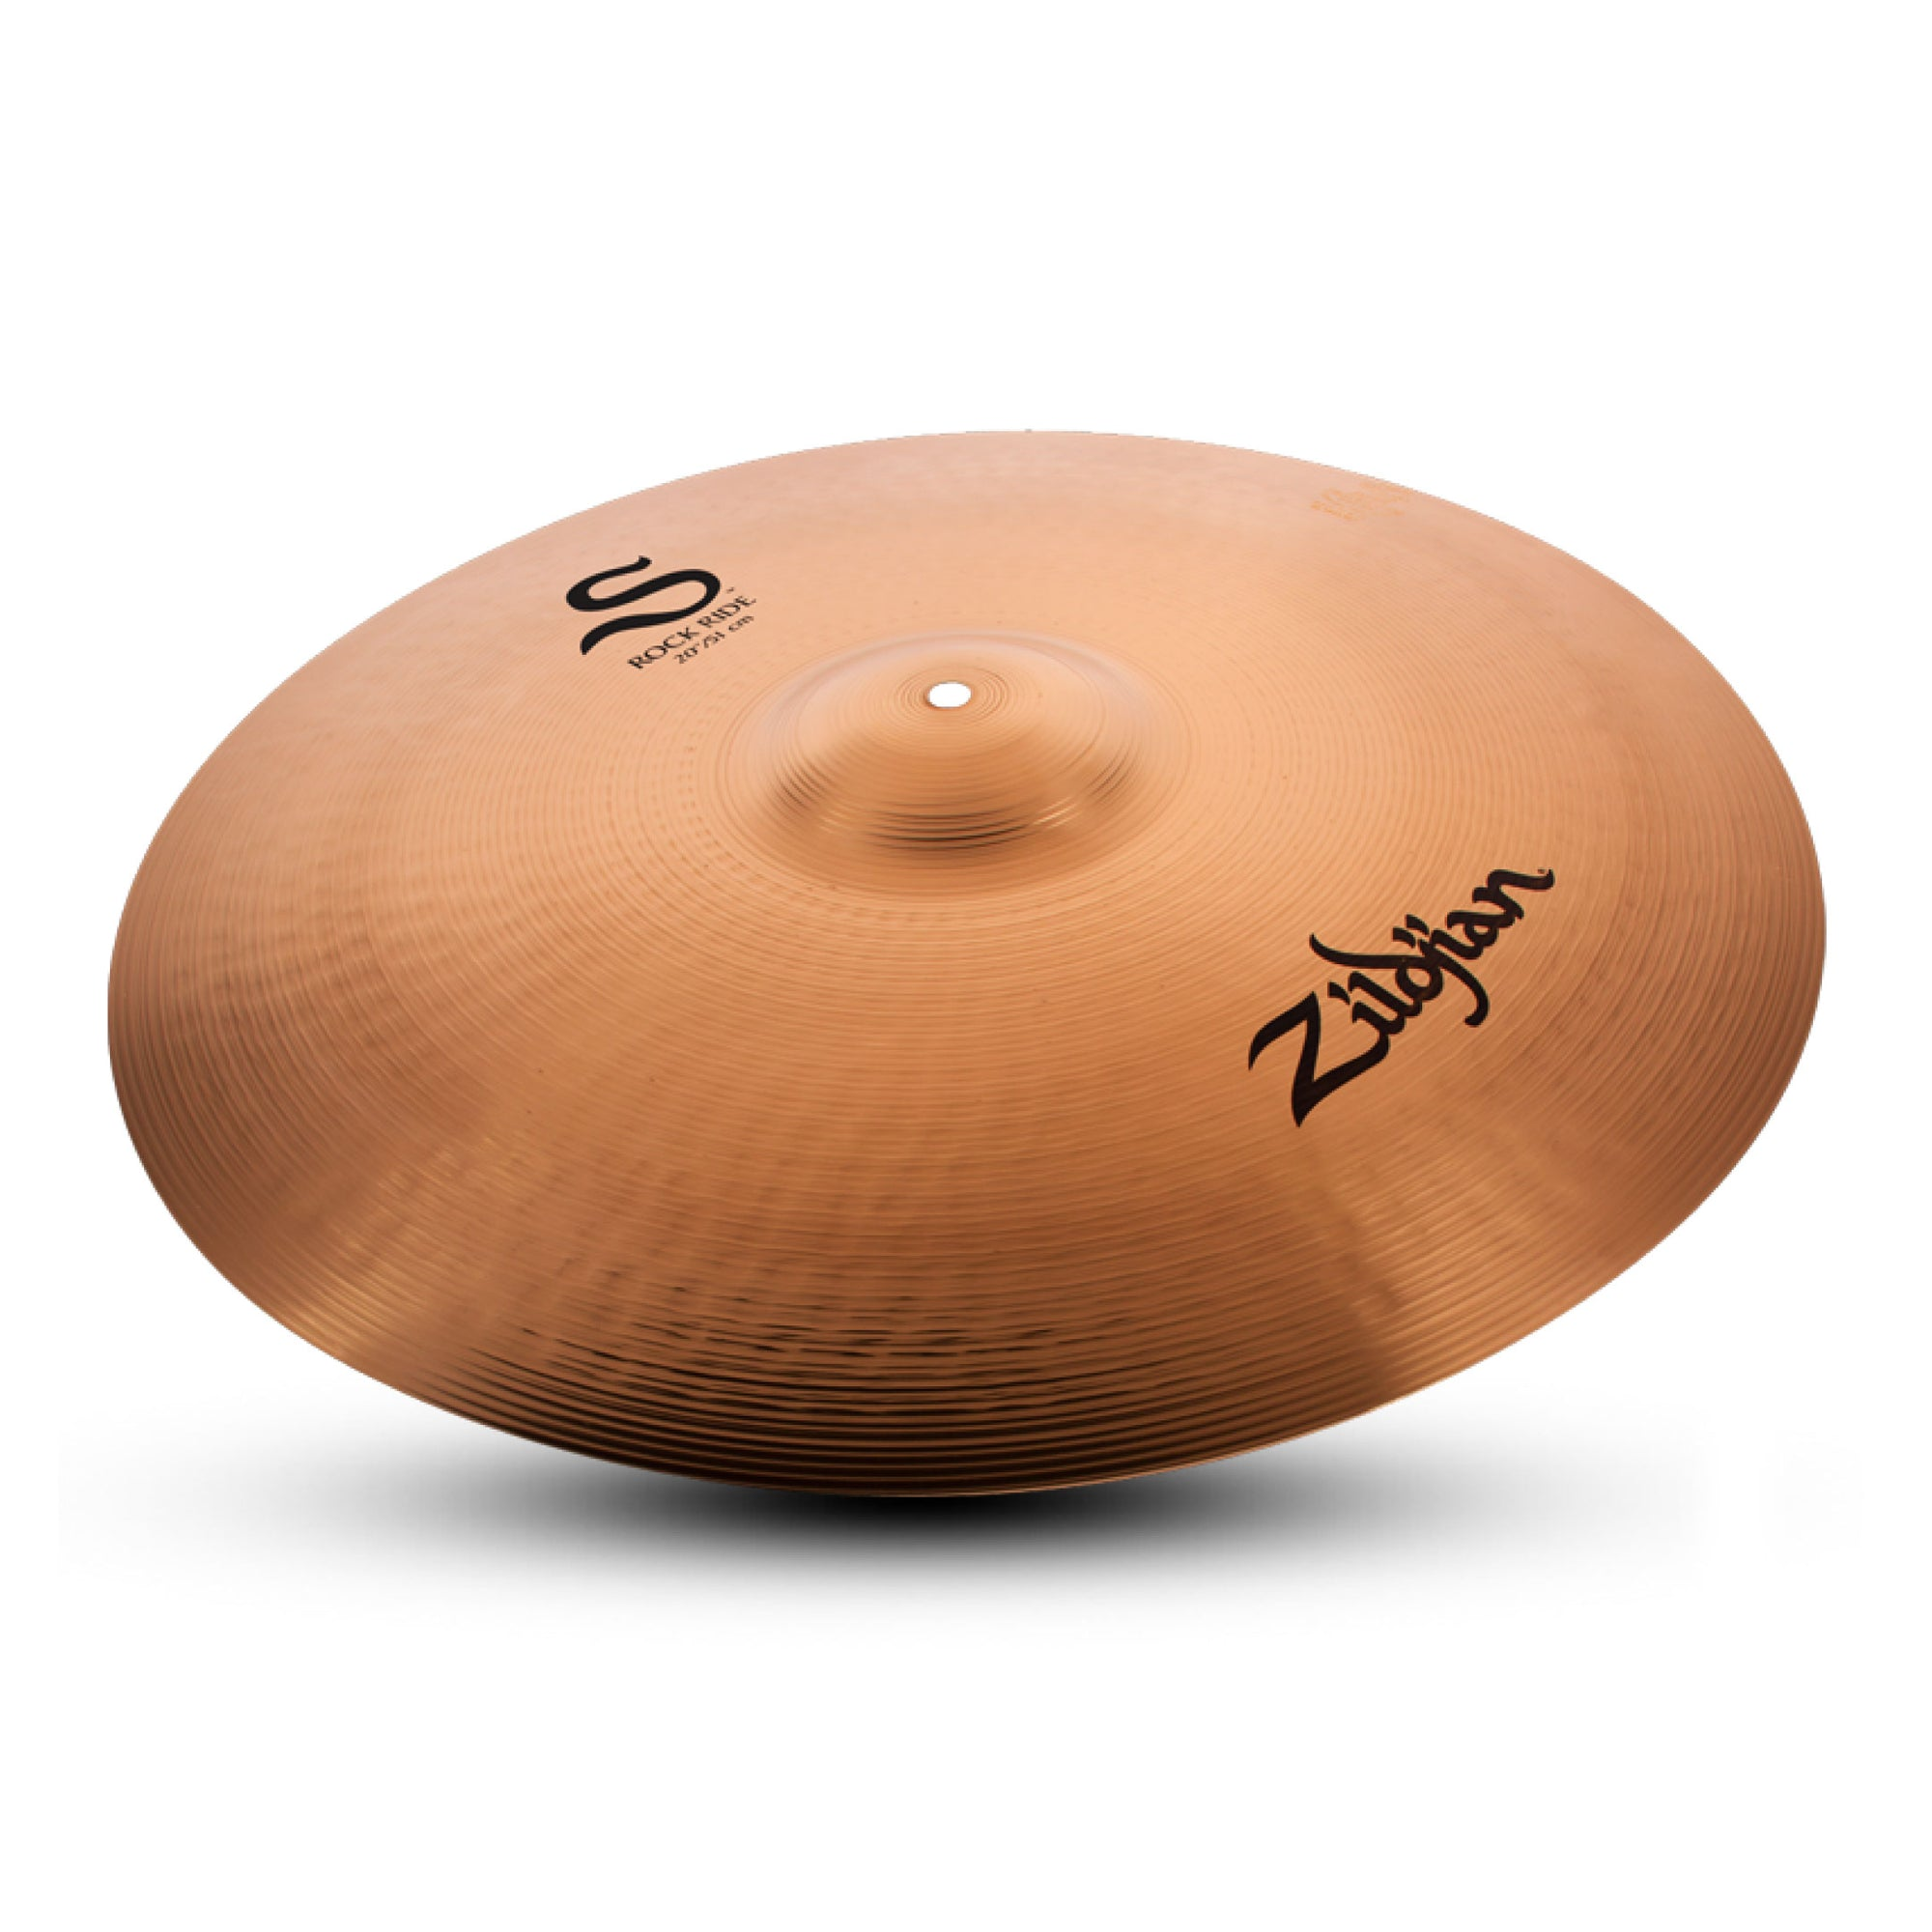 Zildjian Cymbal S Rock Ride (Discontinued)